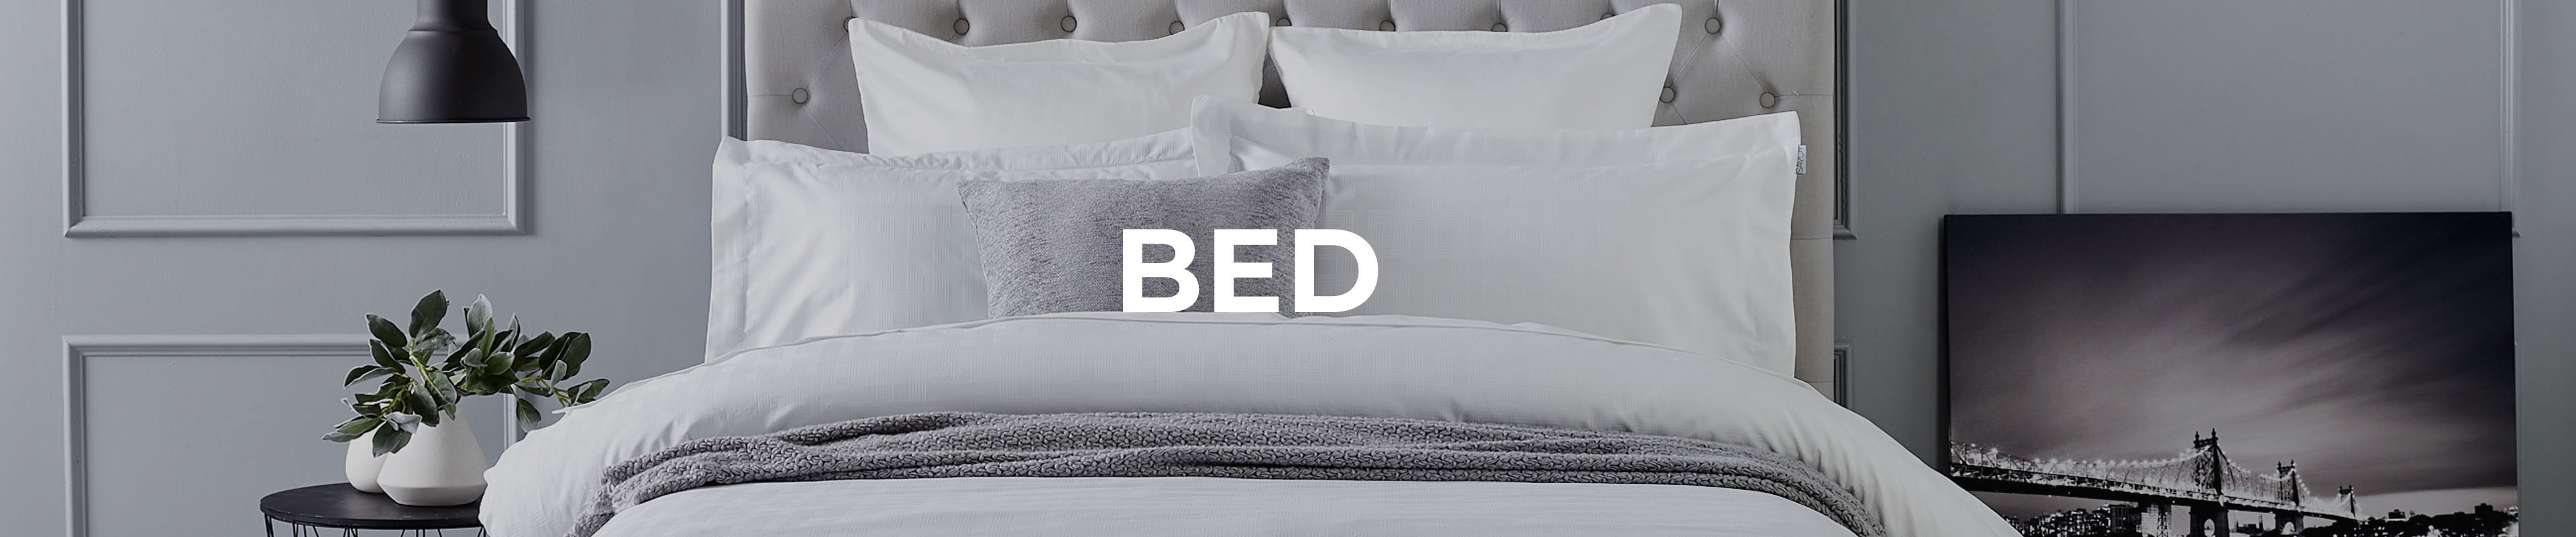 Shop Our Bed Range